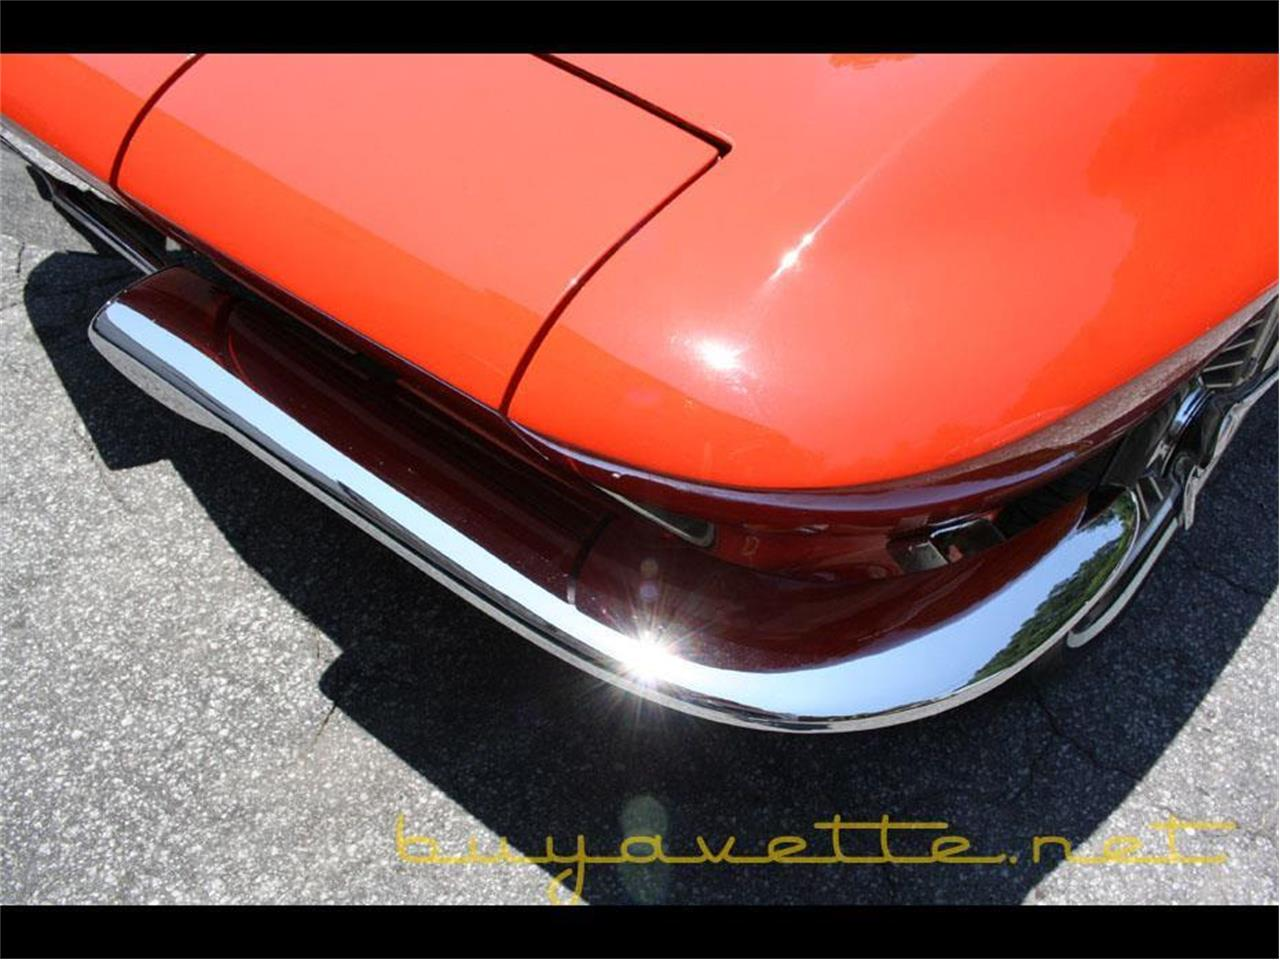 Large Picture of '64 Corvette located in Georgia - $57,999.00 Offered by Buyavette - Q5ZM